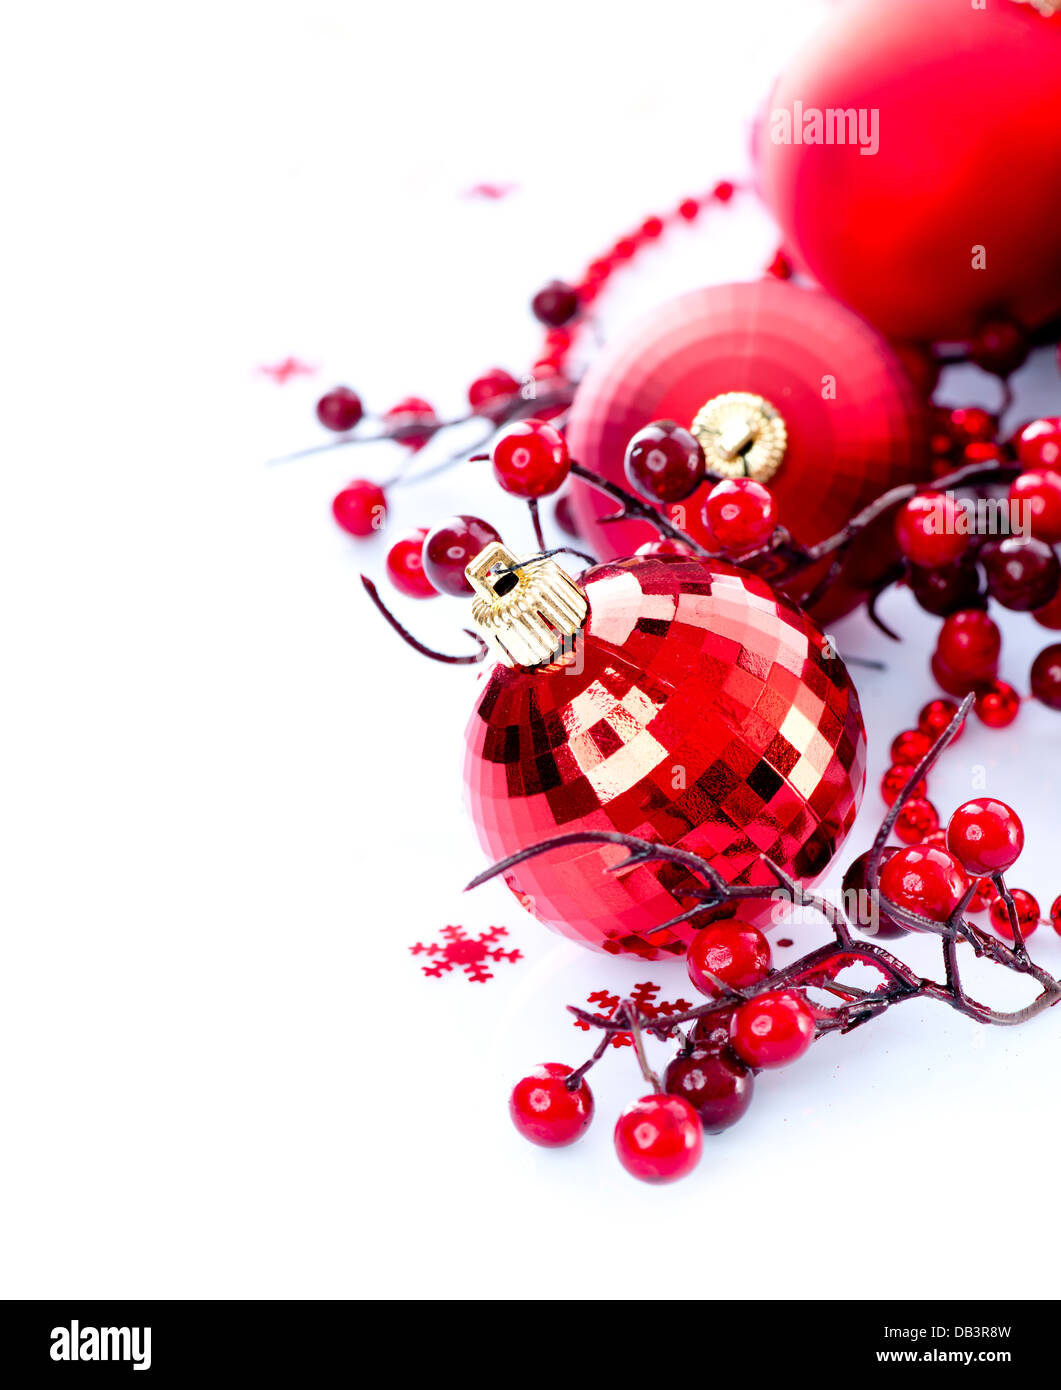 Christmas and New Year Baubles and Decorations Stock Photo